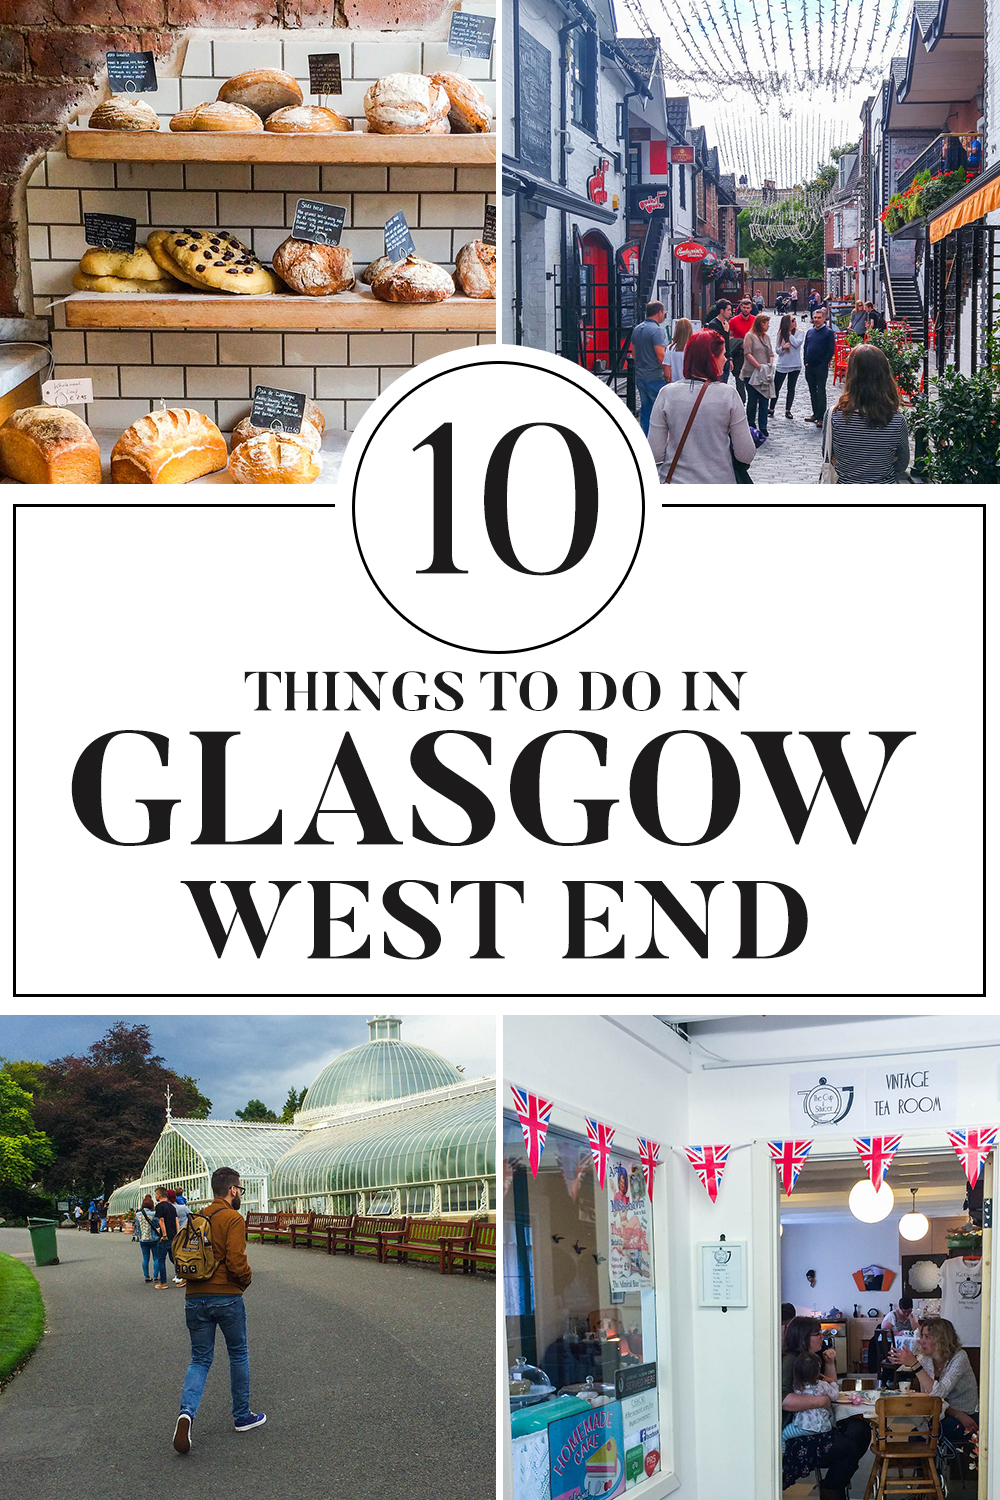 Guide to Glasgow's West End